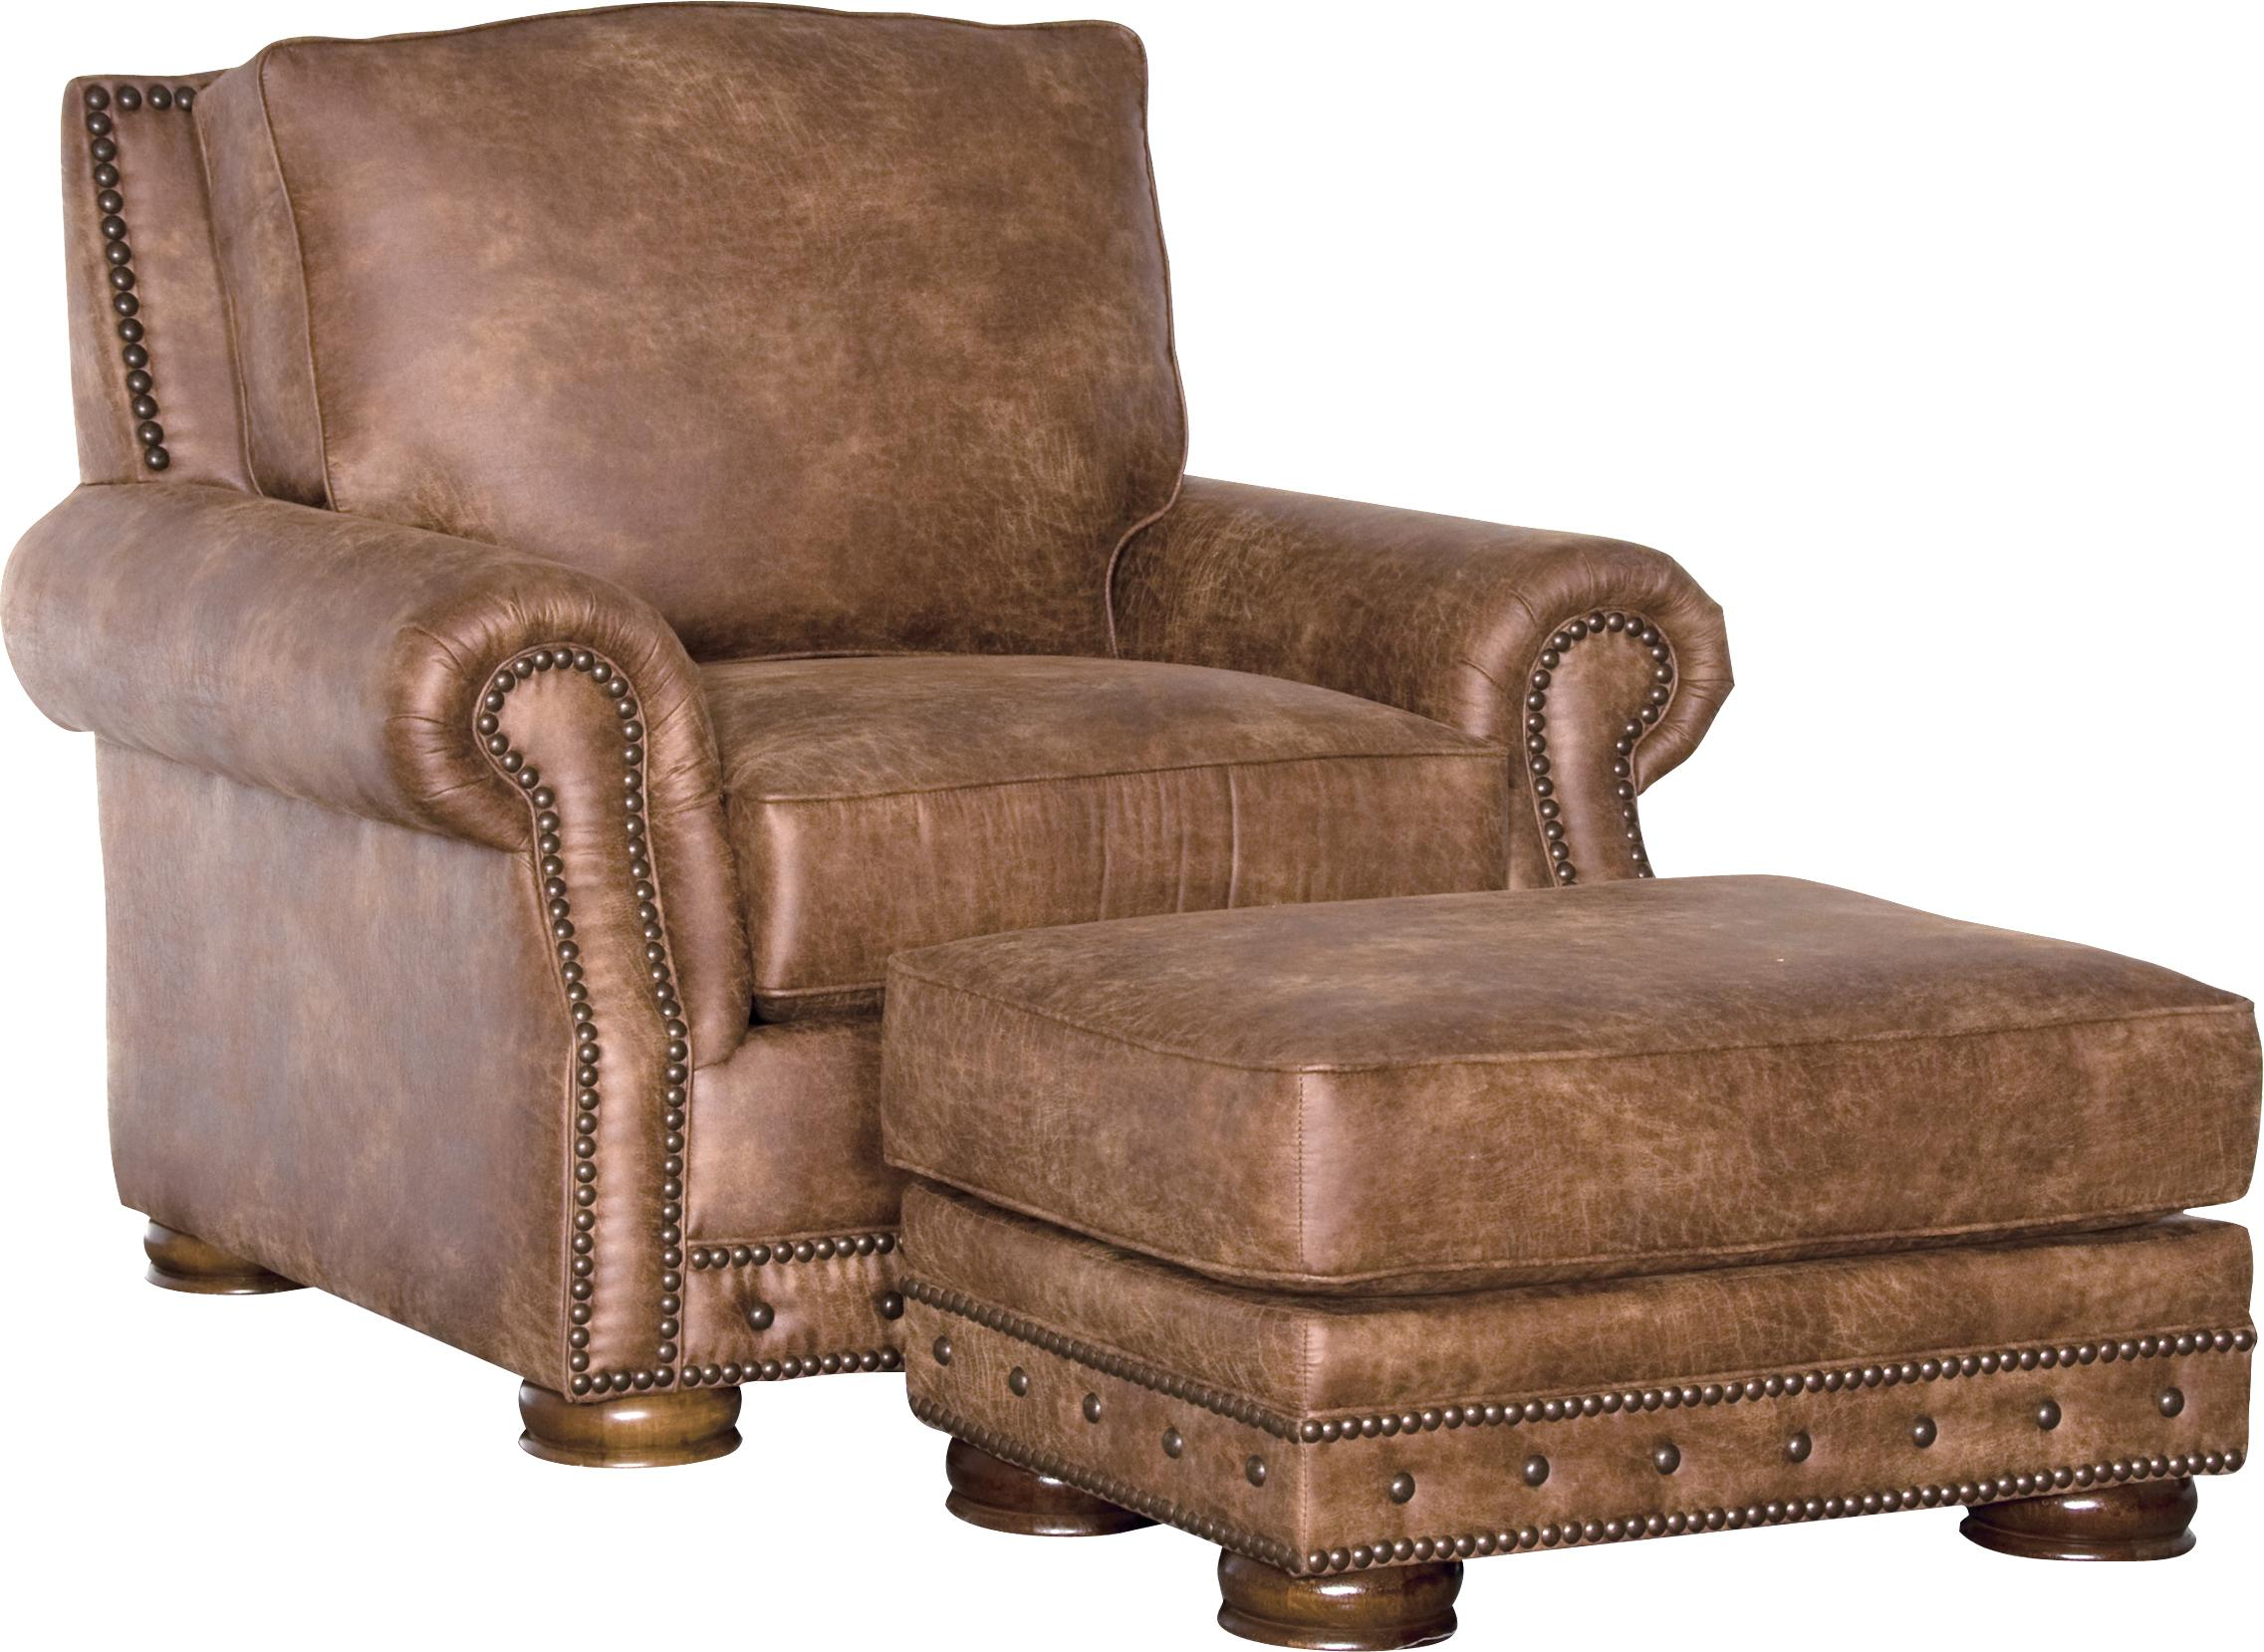 2900 Traditional Chair and Ottoman Set by Mayo at Story & Lee Furniture